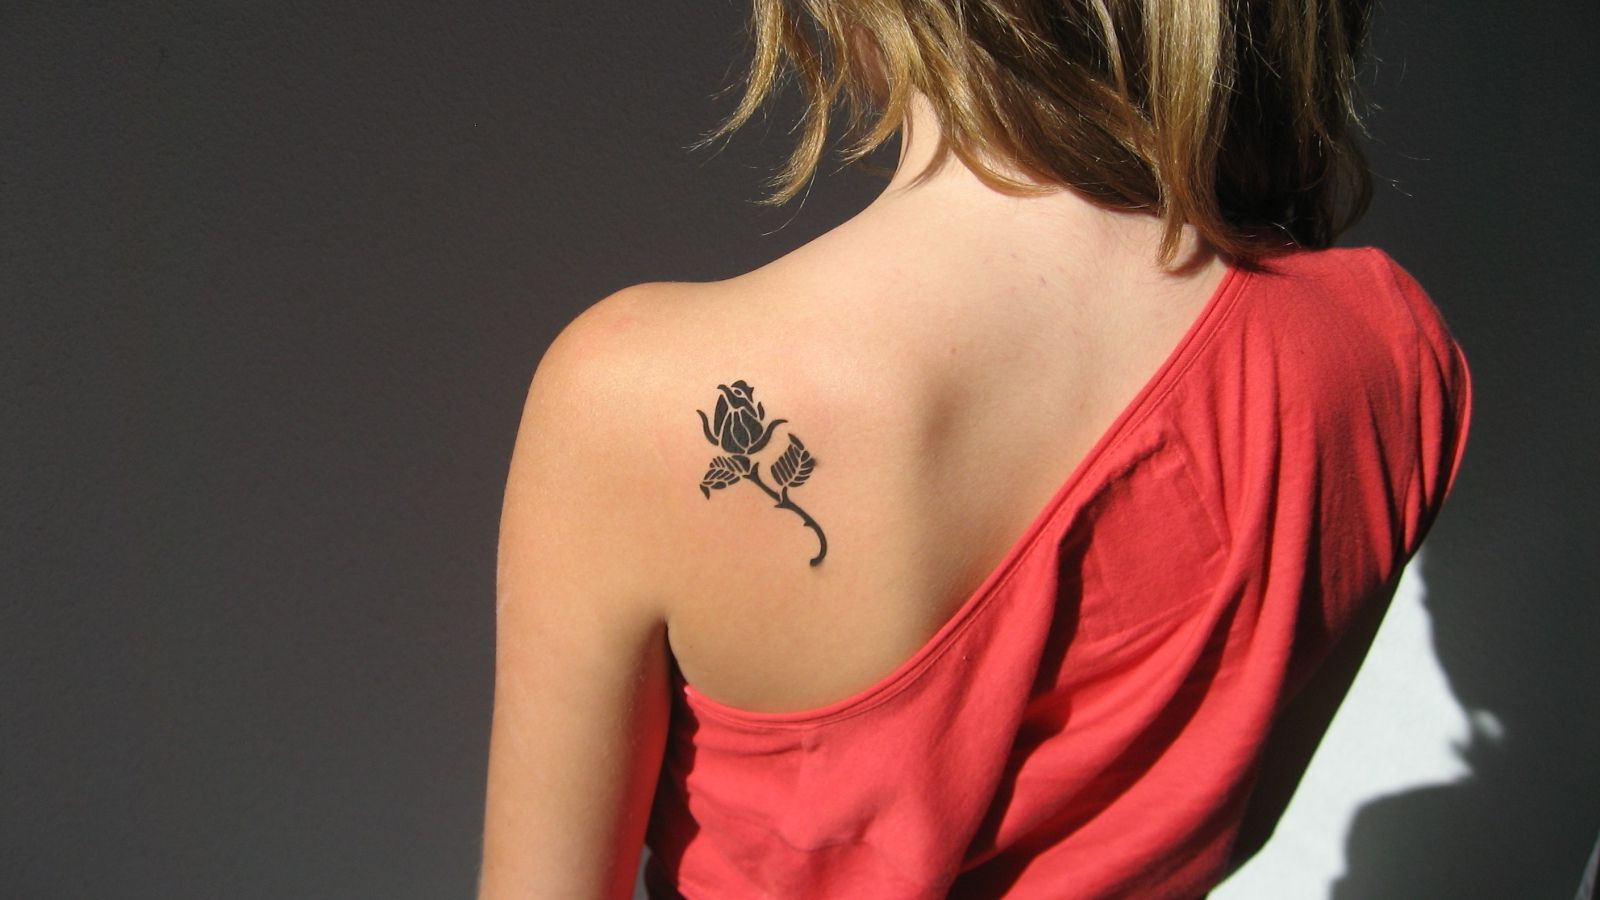 Girl Tattoos On Shoulder Blade 30 Small Cute Tattoos For Girls Cute Small Tattoo Ideas Shoulder Blade Tattoo Shoulder Tattoo Cute Girl Tattoos